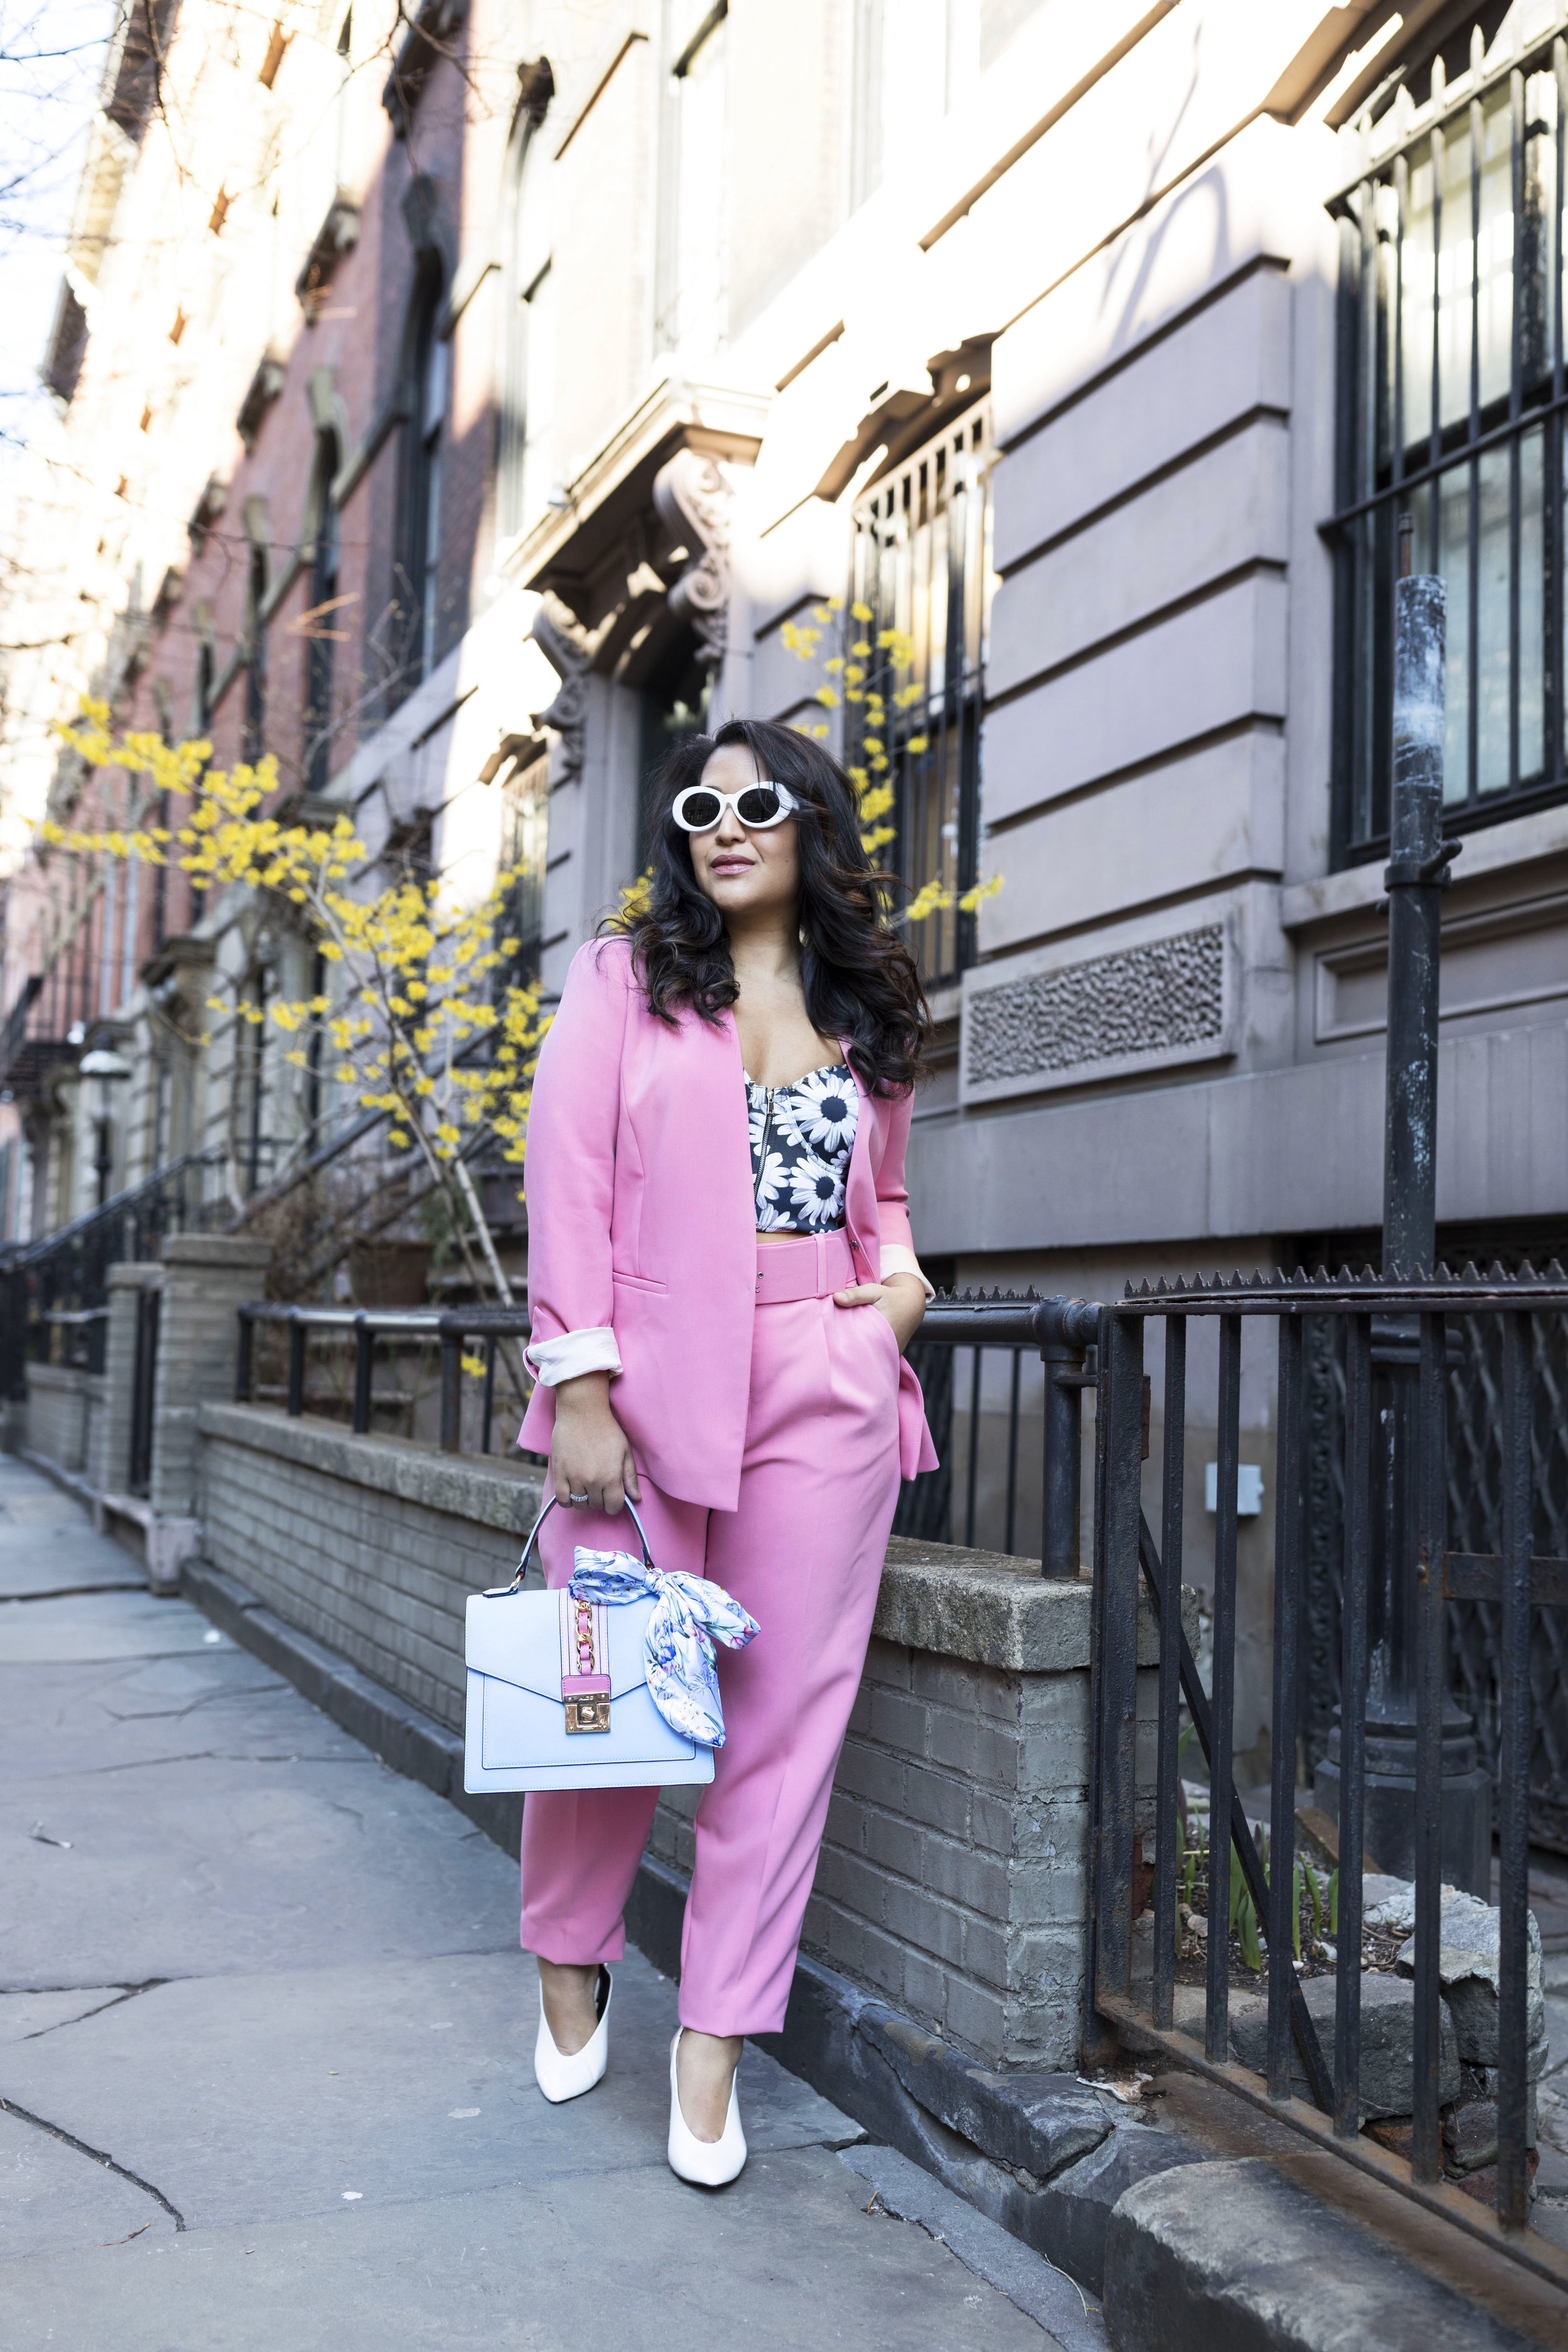 Krity S x Pink Power Pant Suit x Spring Outfit Trend14.jpg